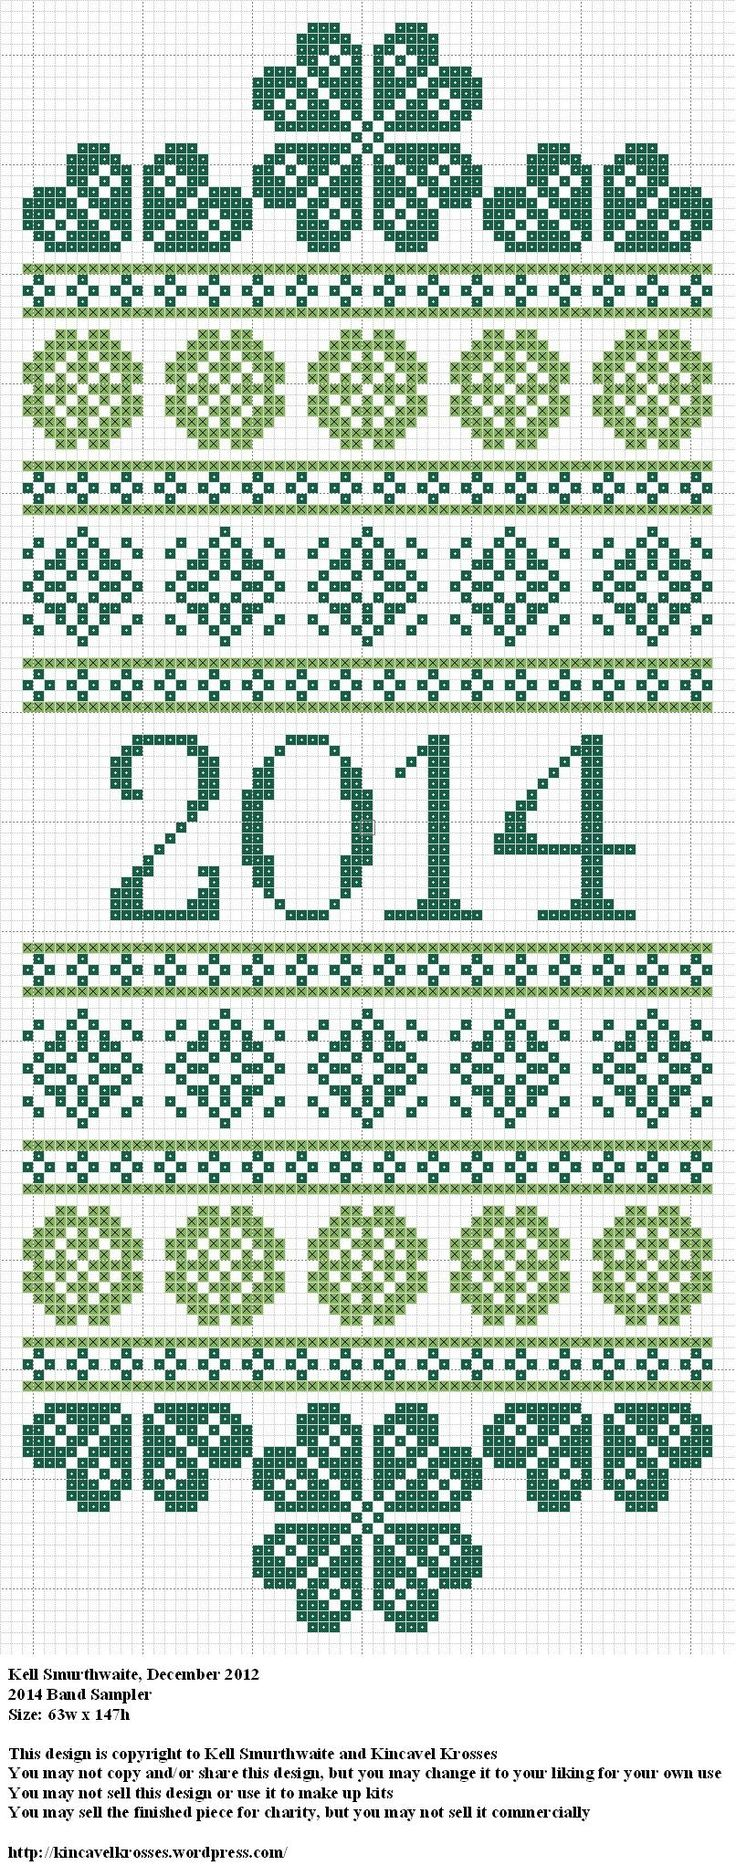 2014 Band Sampler, designed by @Kell Smurthwaite, from Kincavel Krosses.